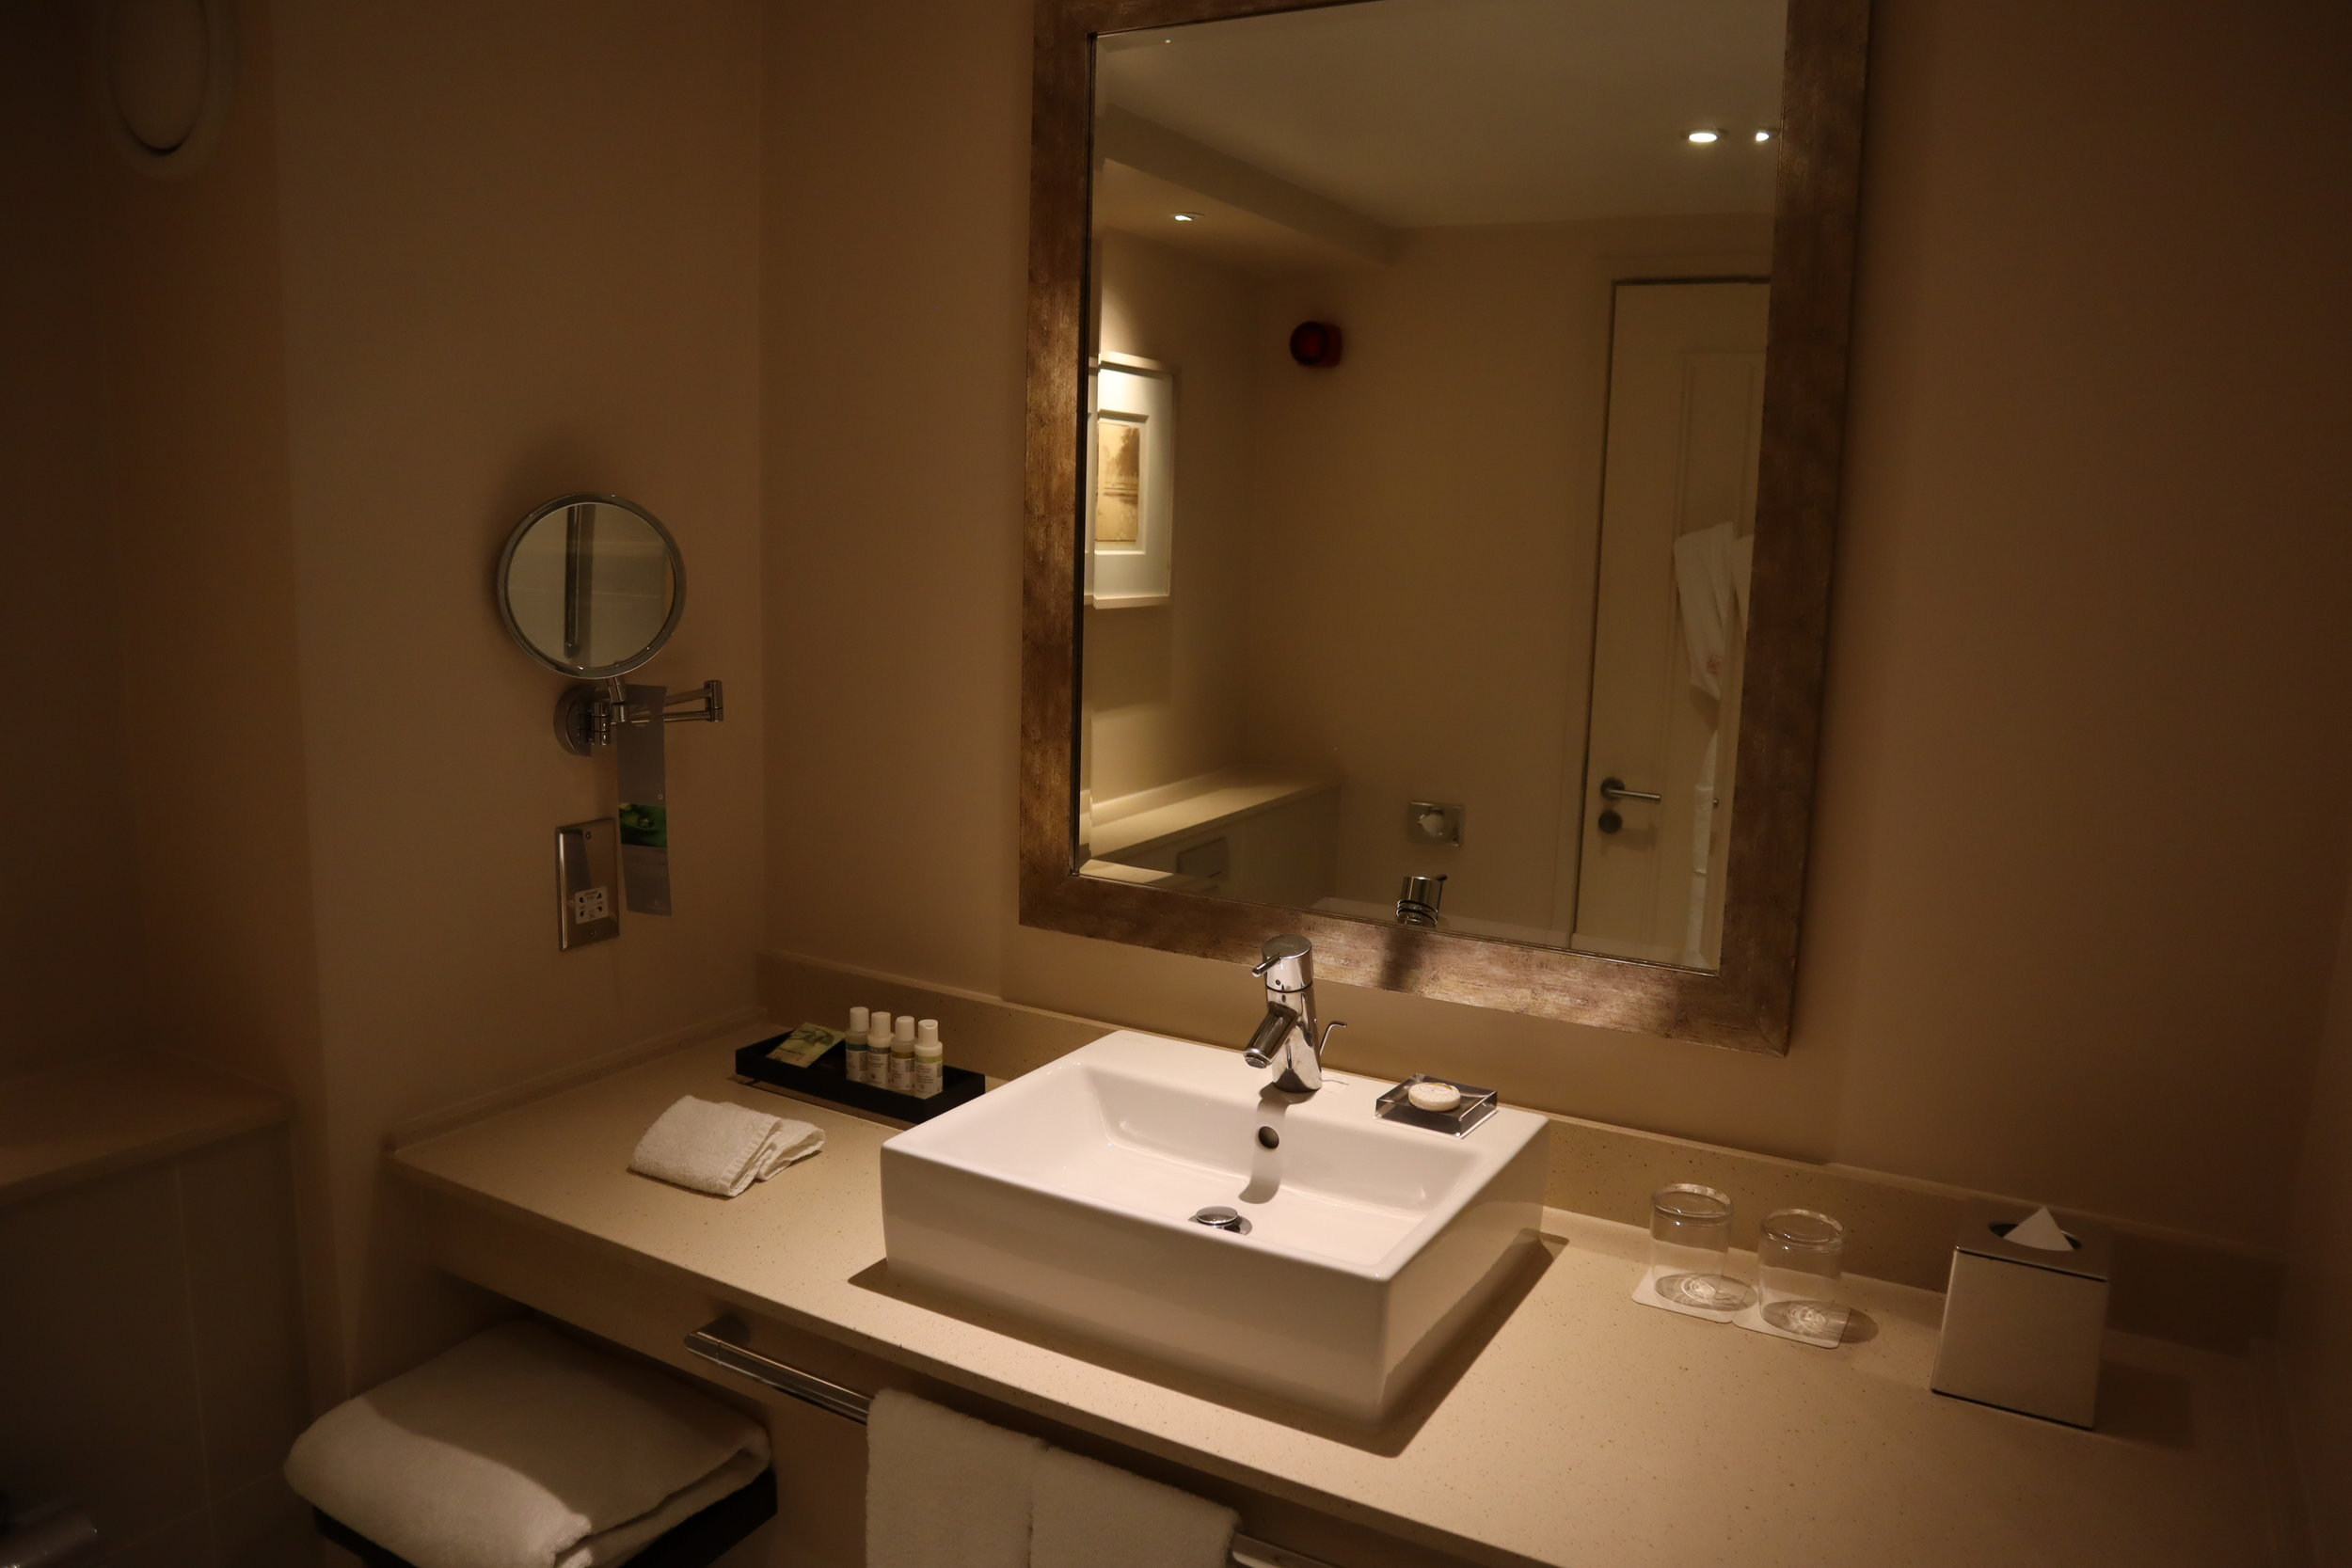 St. Pancras Renaissance Hotel London – Sink and mirror